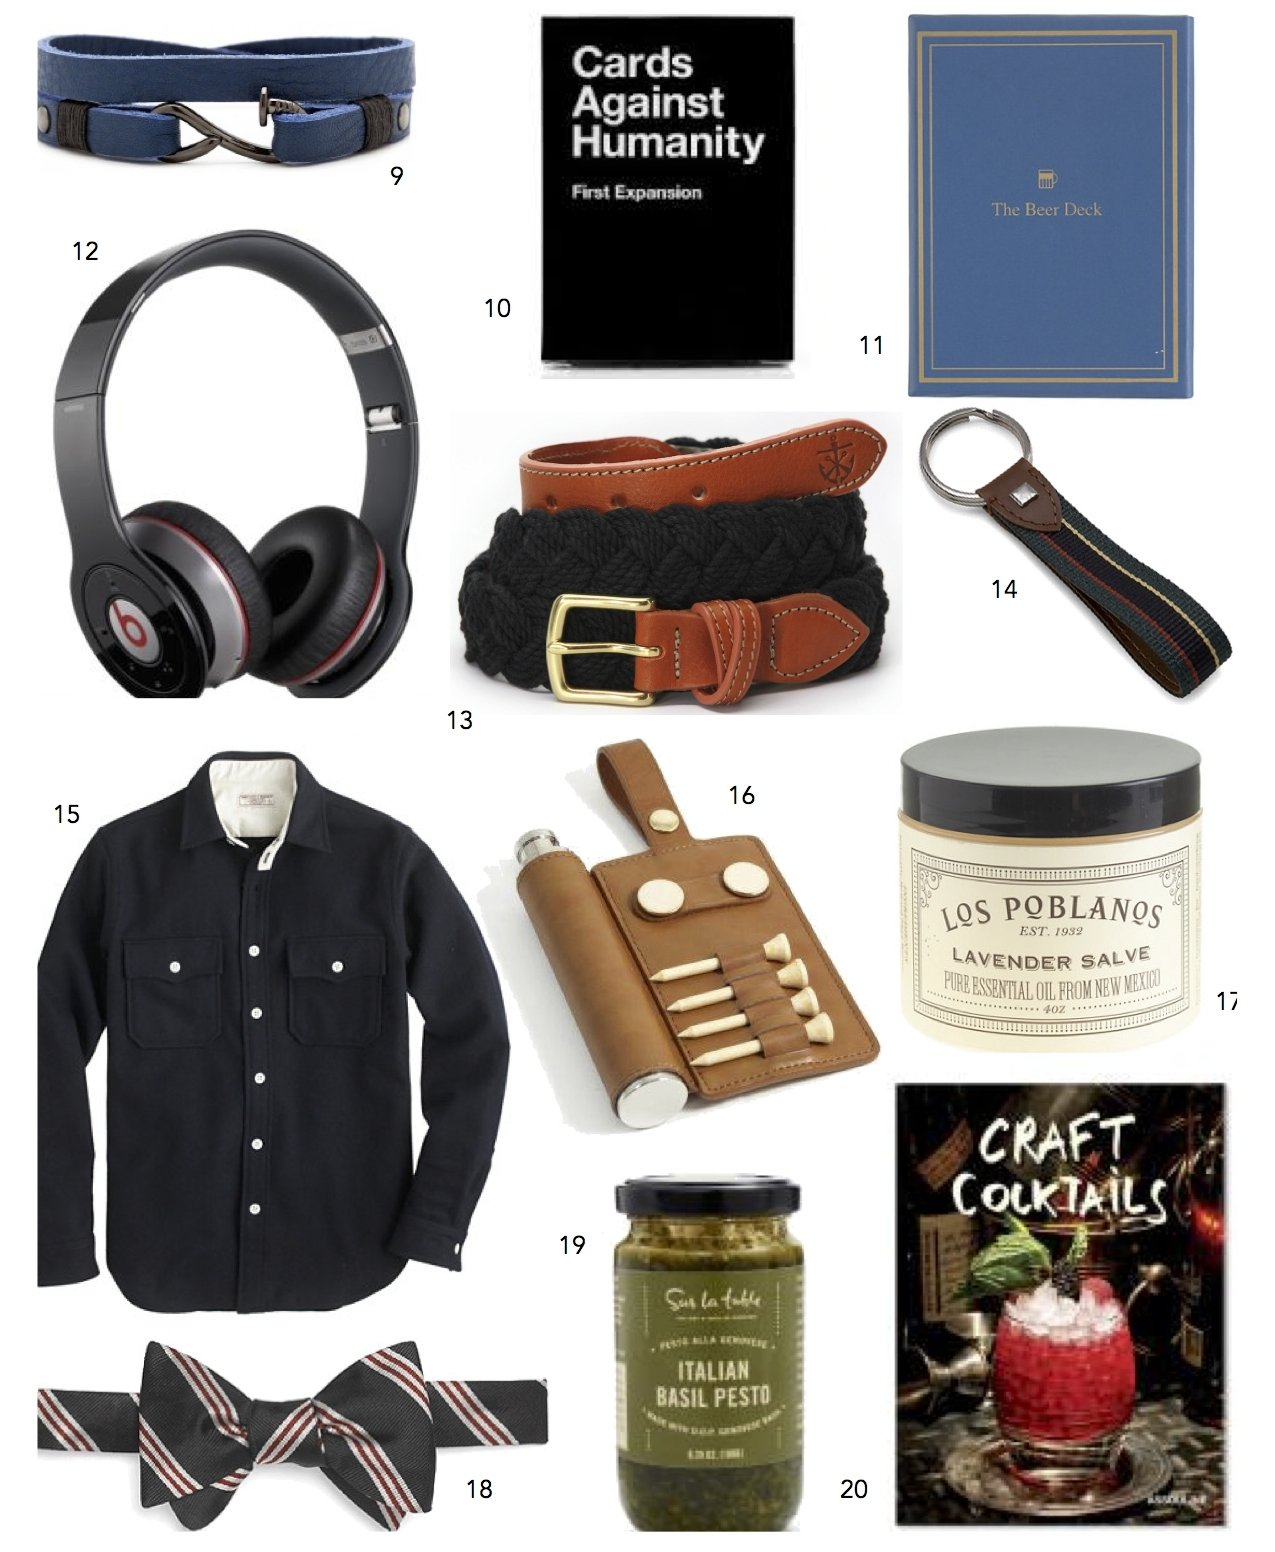 10 Lovable Best Gift Ideas For Men 2013 gift guide for the guys 2 2020